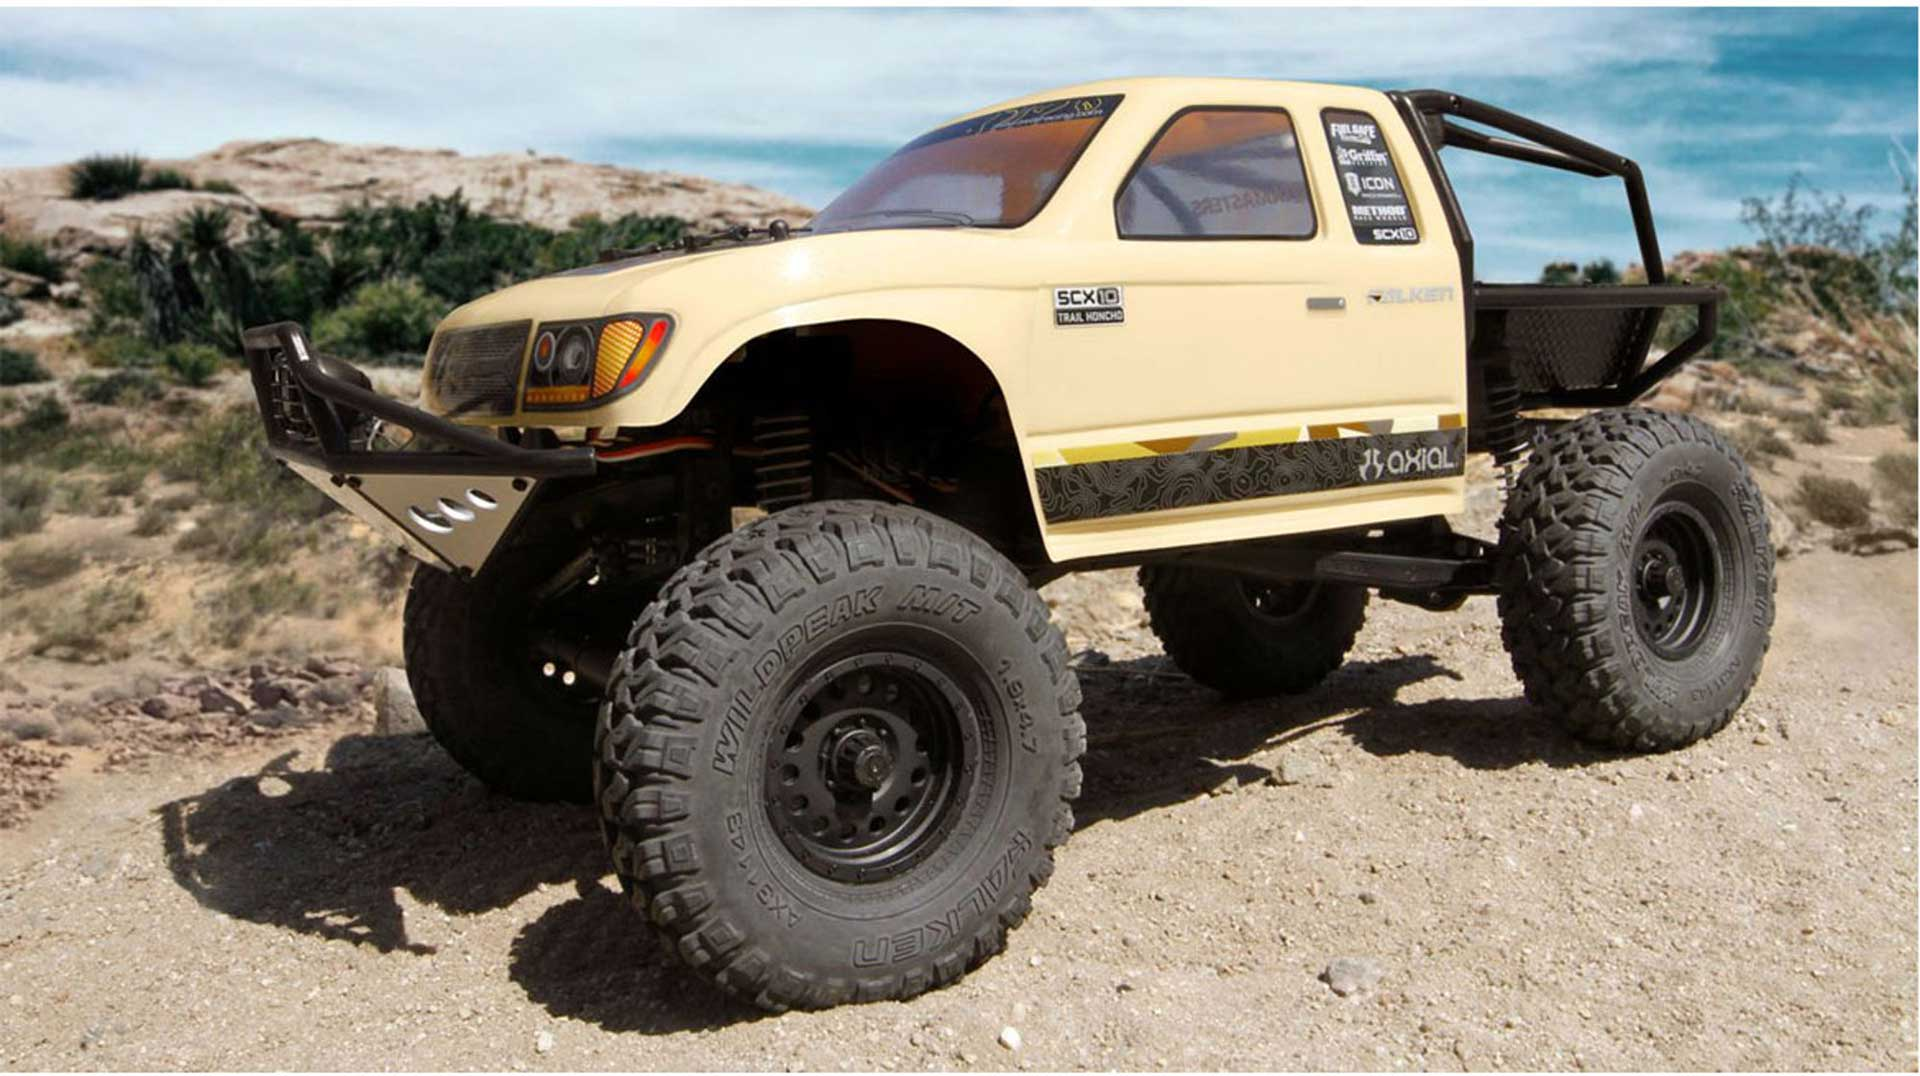 AXIAL SCX10 II TRAIL HONCHO 4WD 1/10 RTR WITHOUT  BATTERY  AND CHARGING DEVICE